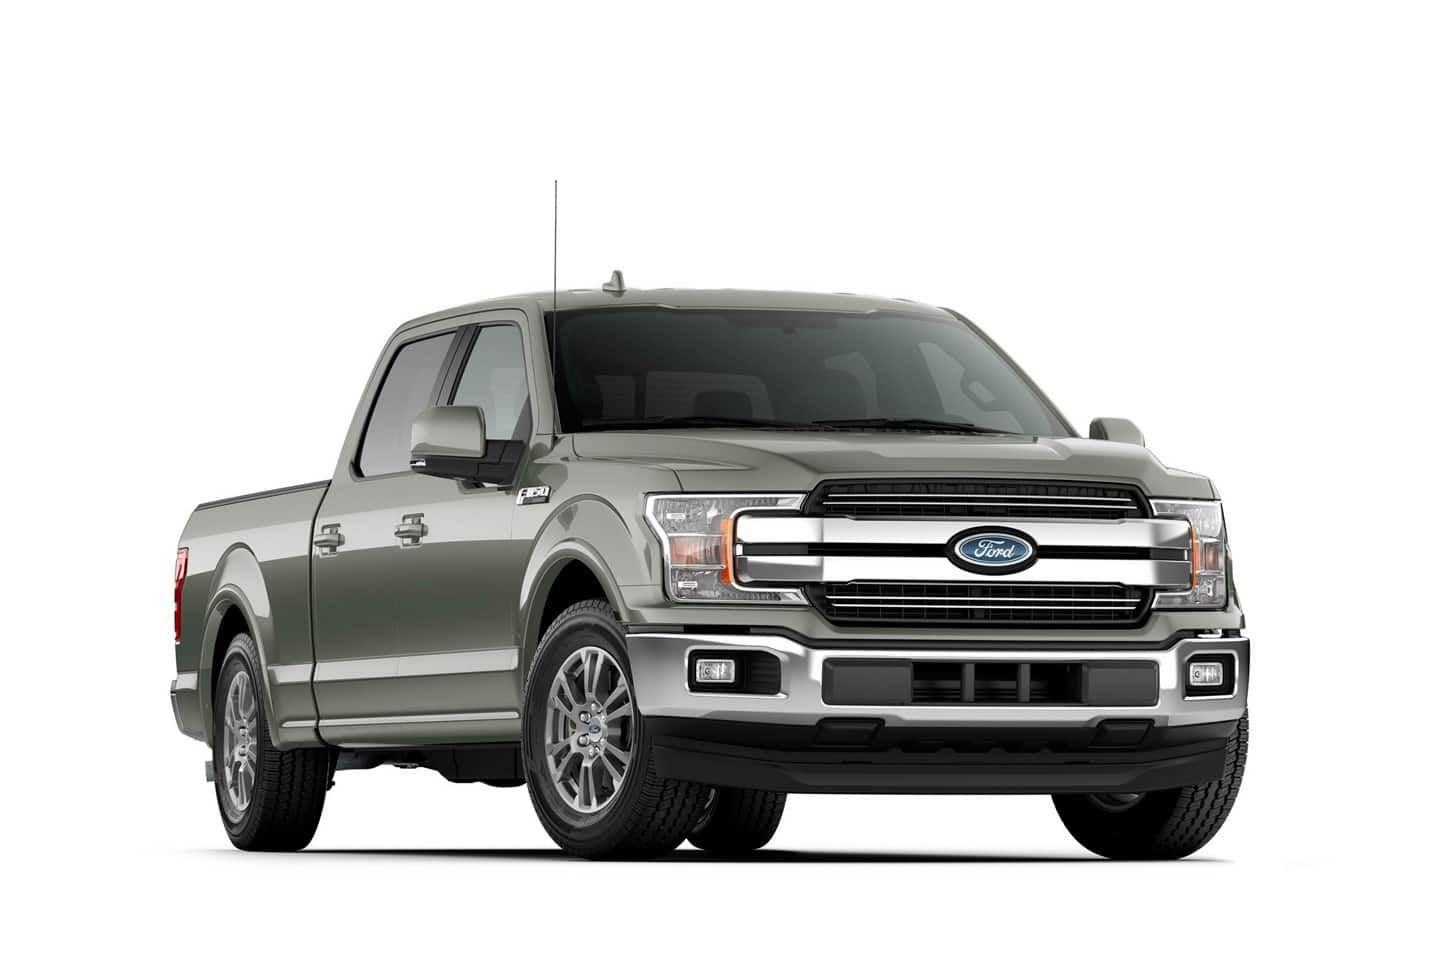 79 All New 2019 Ford Lariat Price Style for 2019 Ford Lariat Price